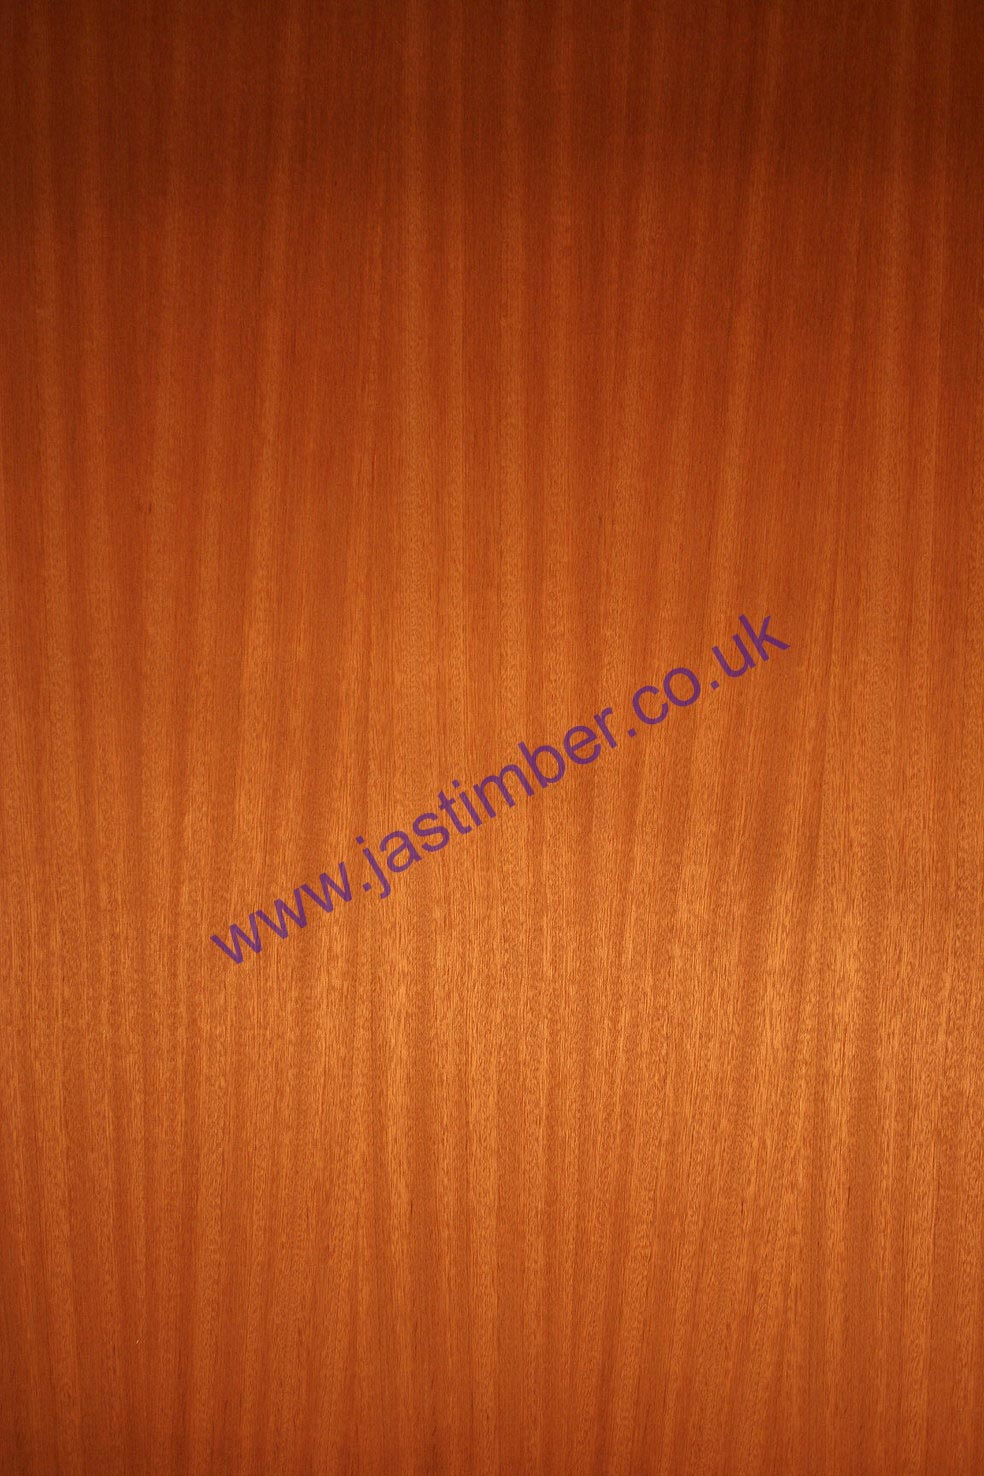 Quarter-cut Sapele Mahogany 4mm Plywood @ JAS Timber